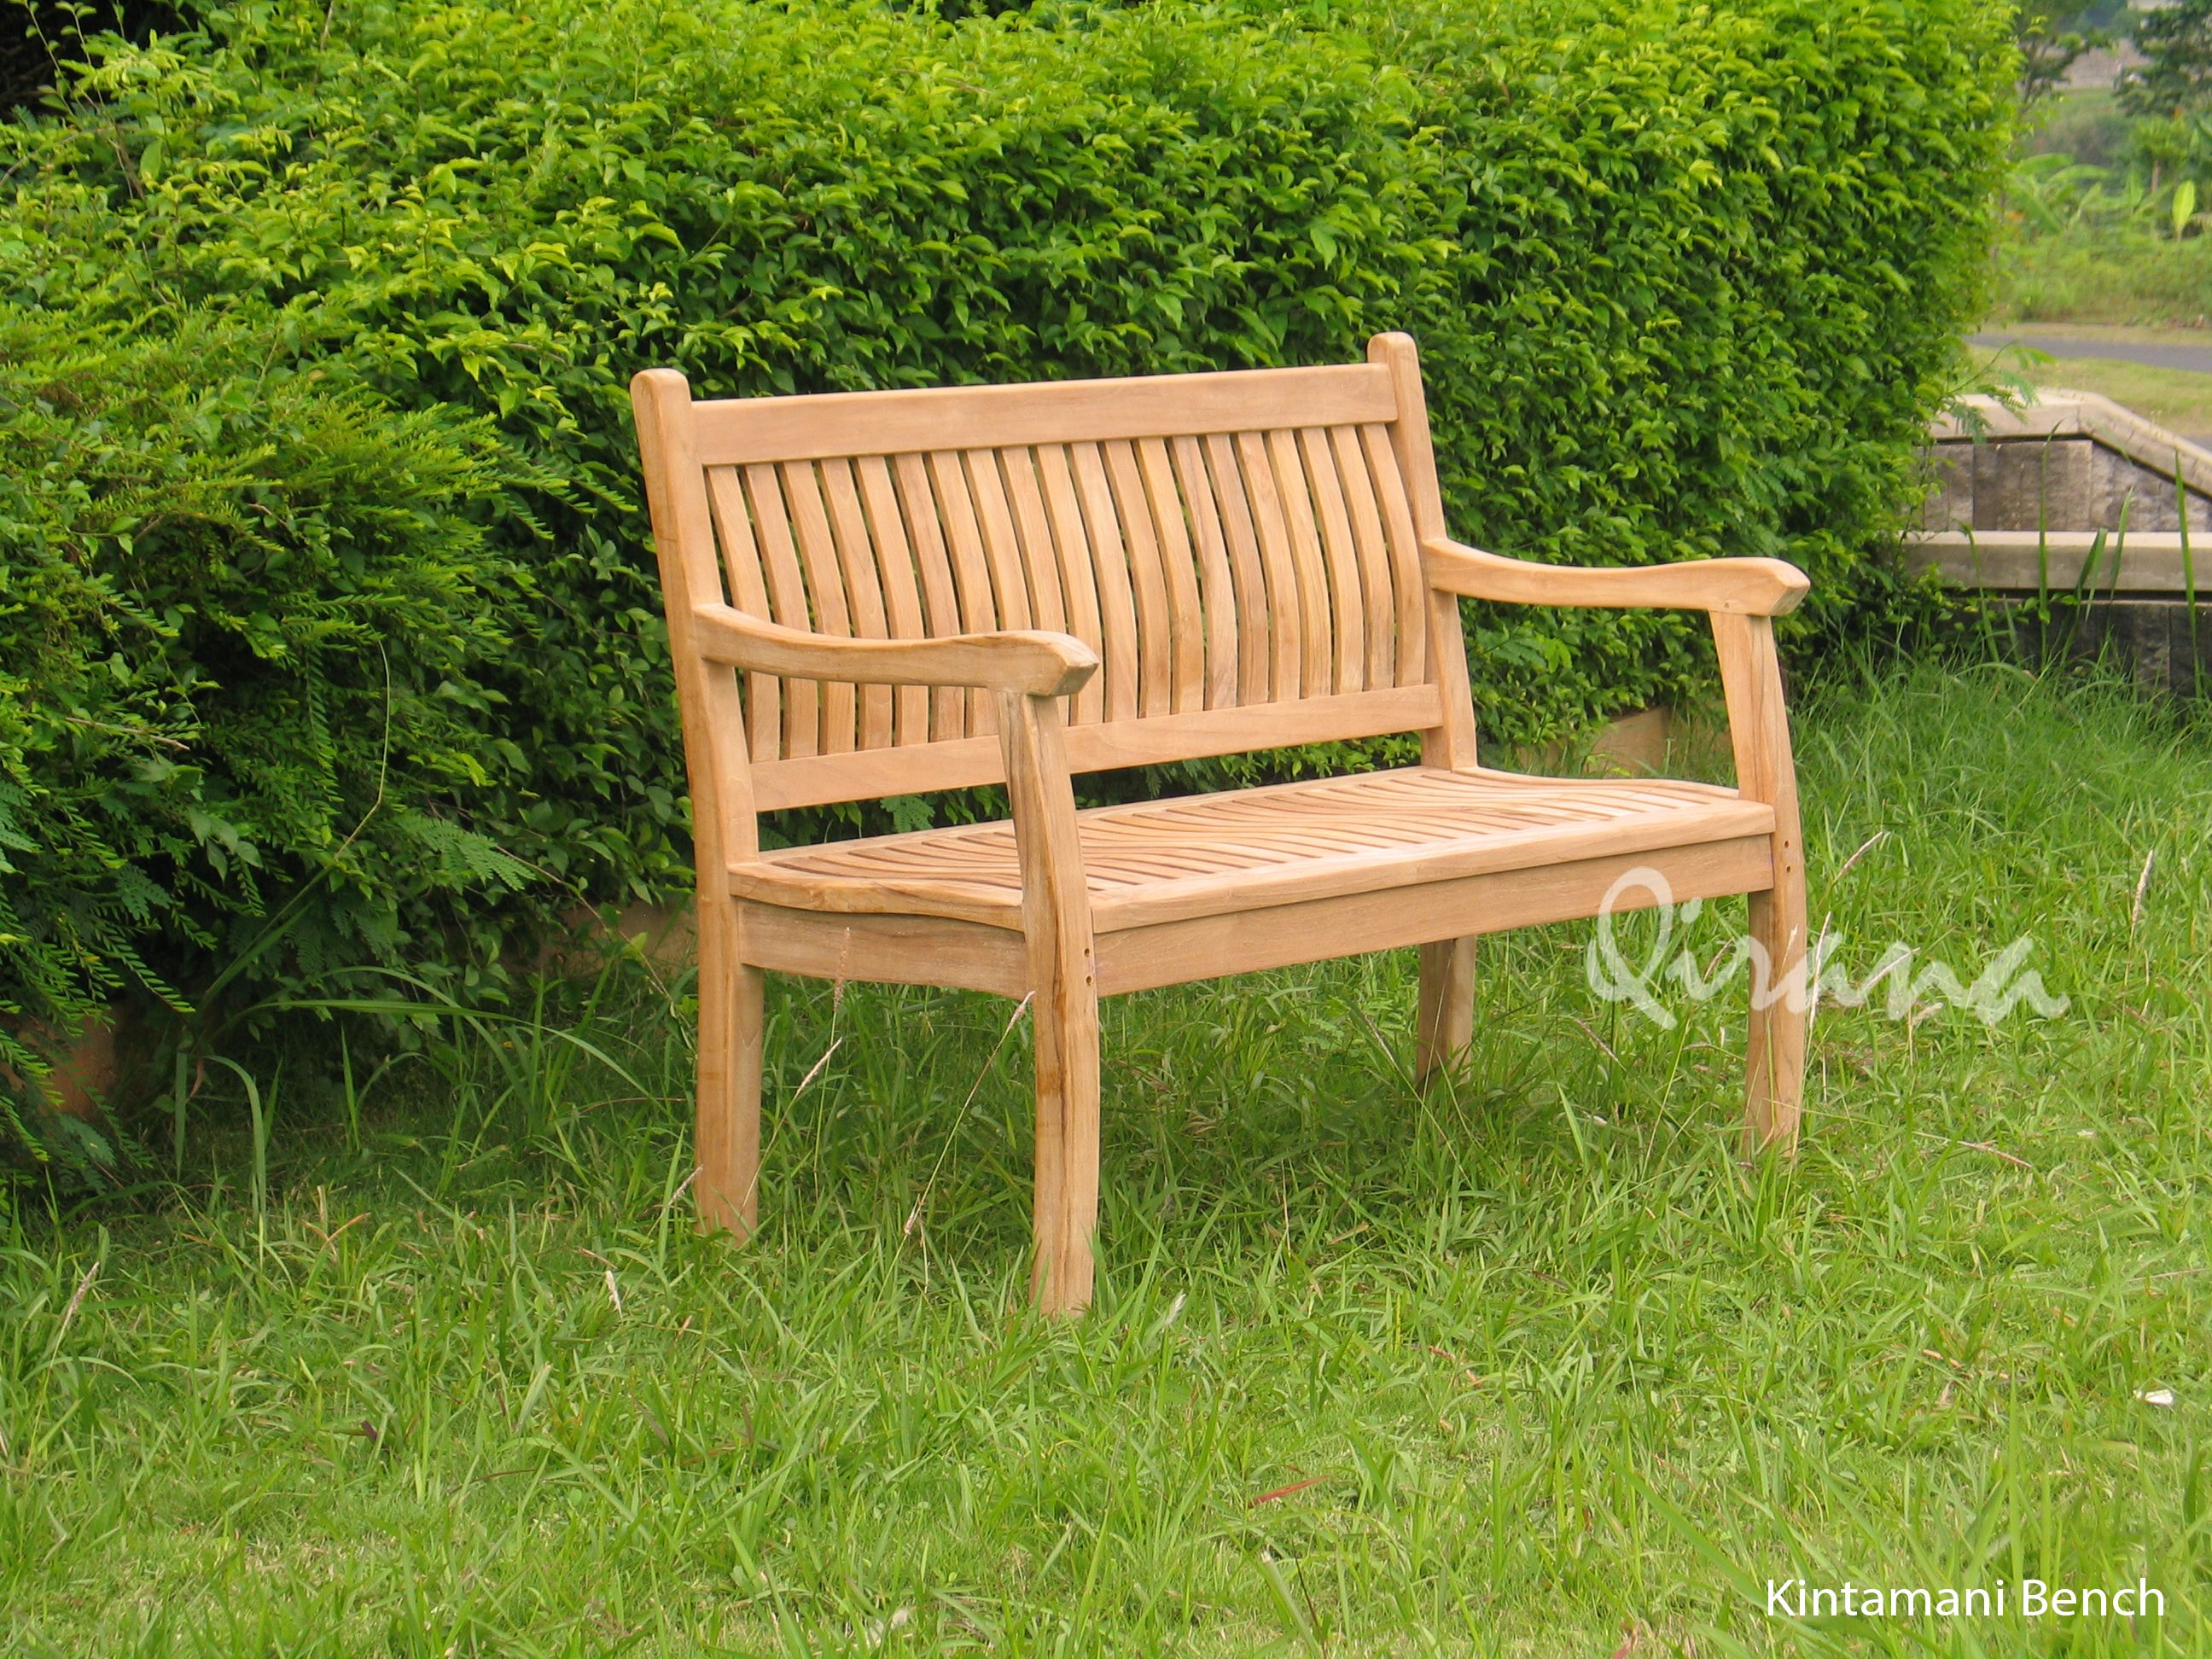 Kintamani Bench Is An Original Furniture Product Manufactured By Cv Qirana The Best Teak Garden Furniture Manufacturer From Jepara Central Java Indonesia If